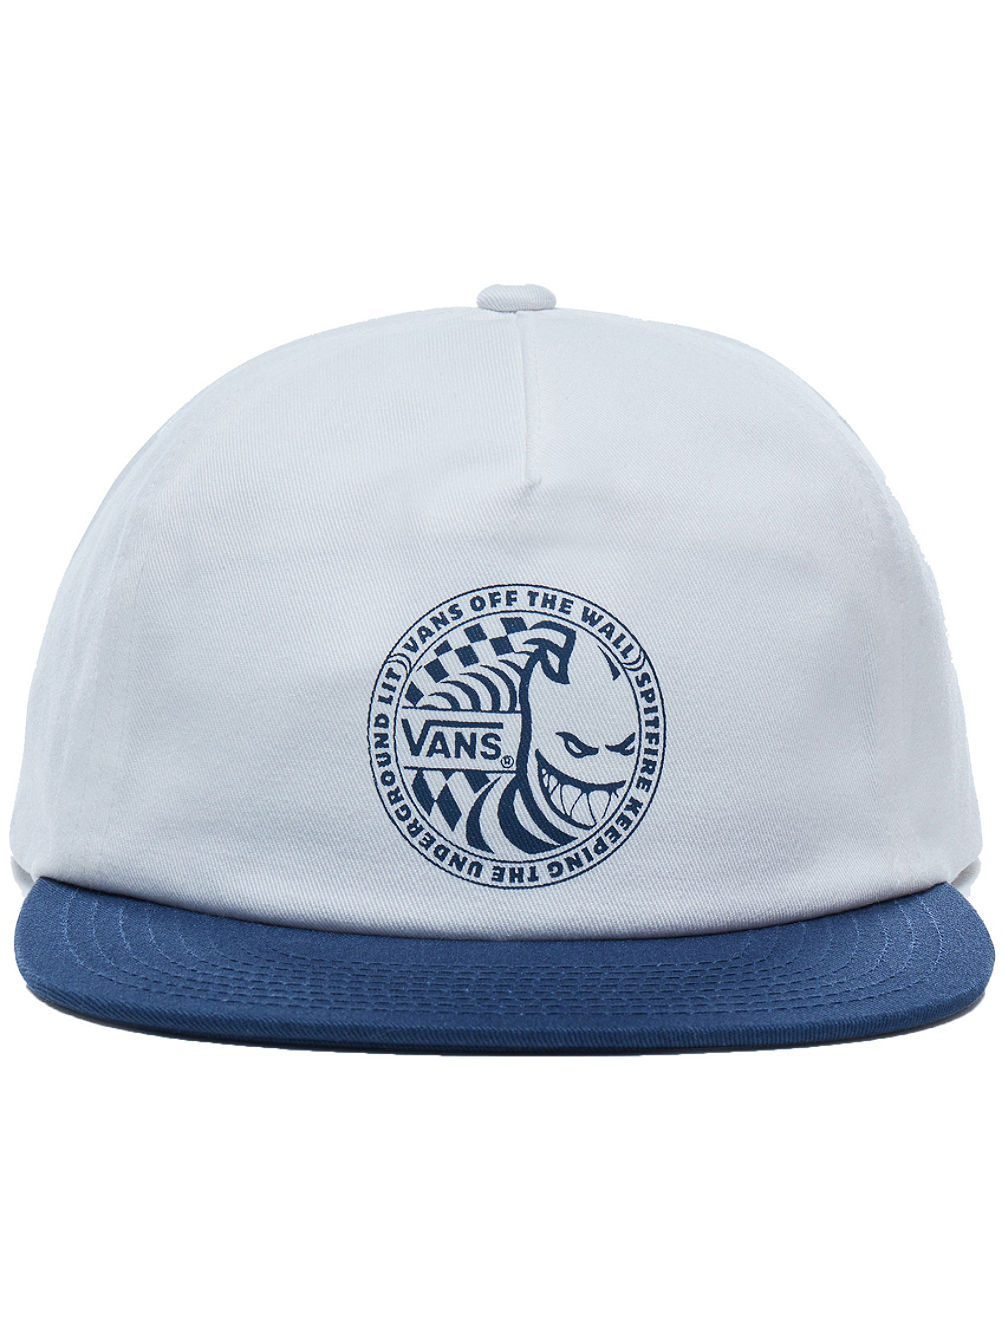 X Spitfire Shallow Unstructured Cap